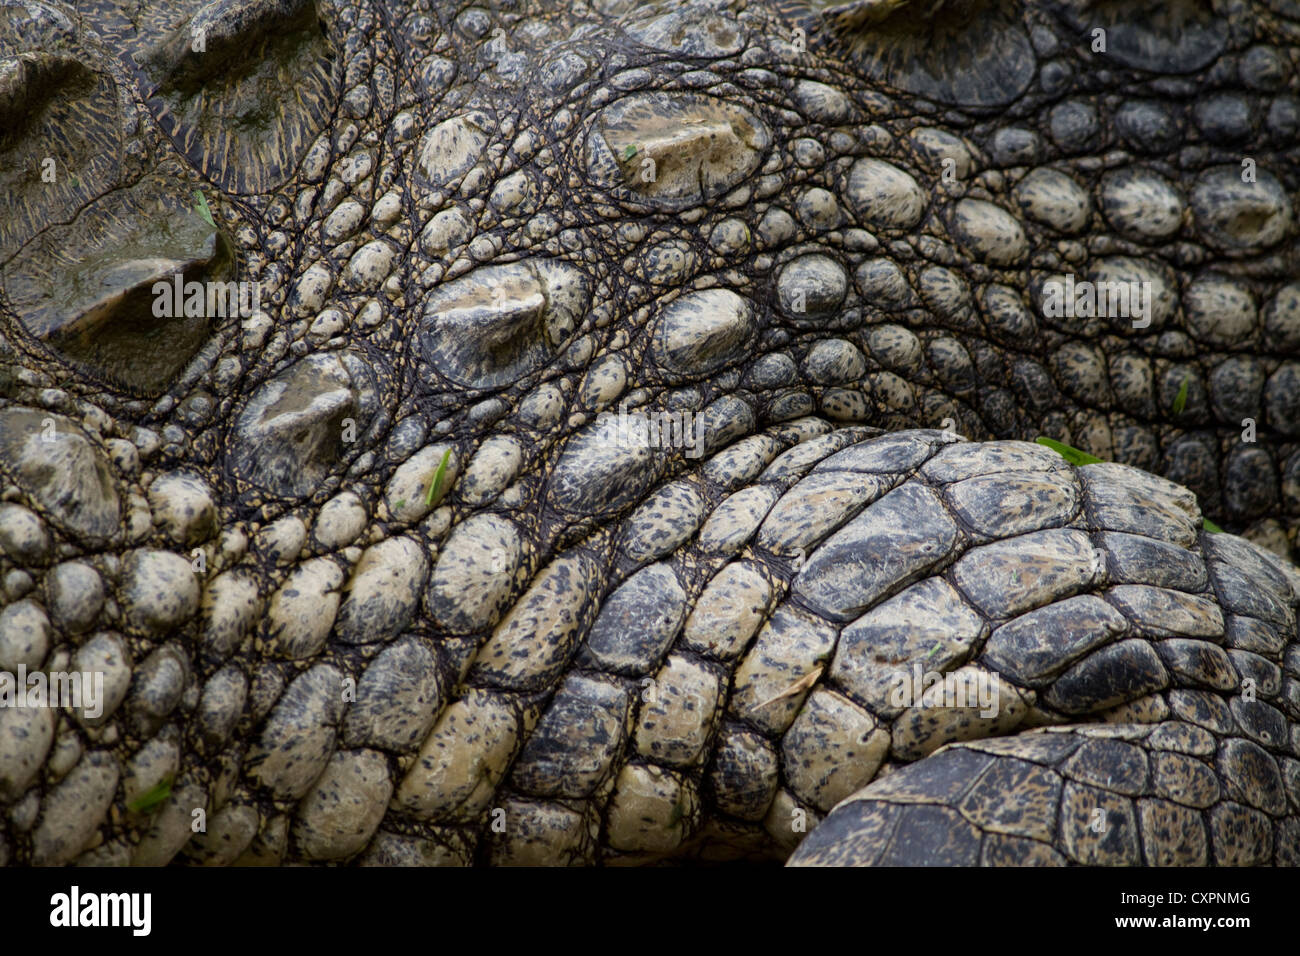 Close up of a Nile Crocodile at the Greater St Lucia wetland park - Stock Image